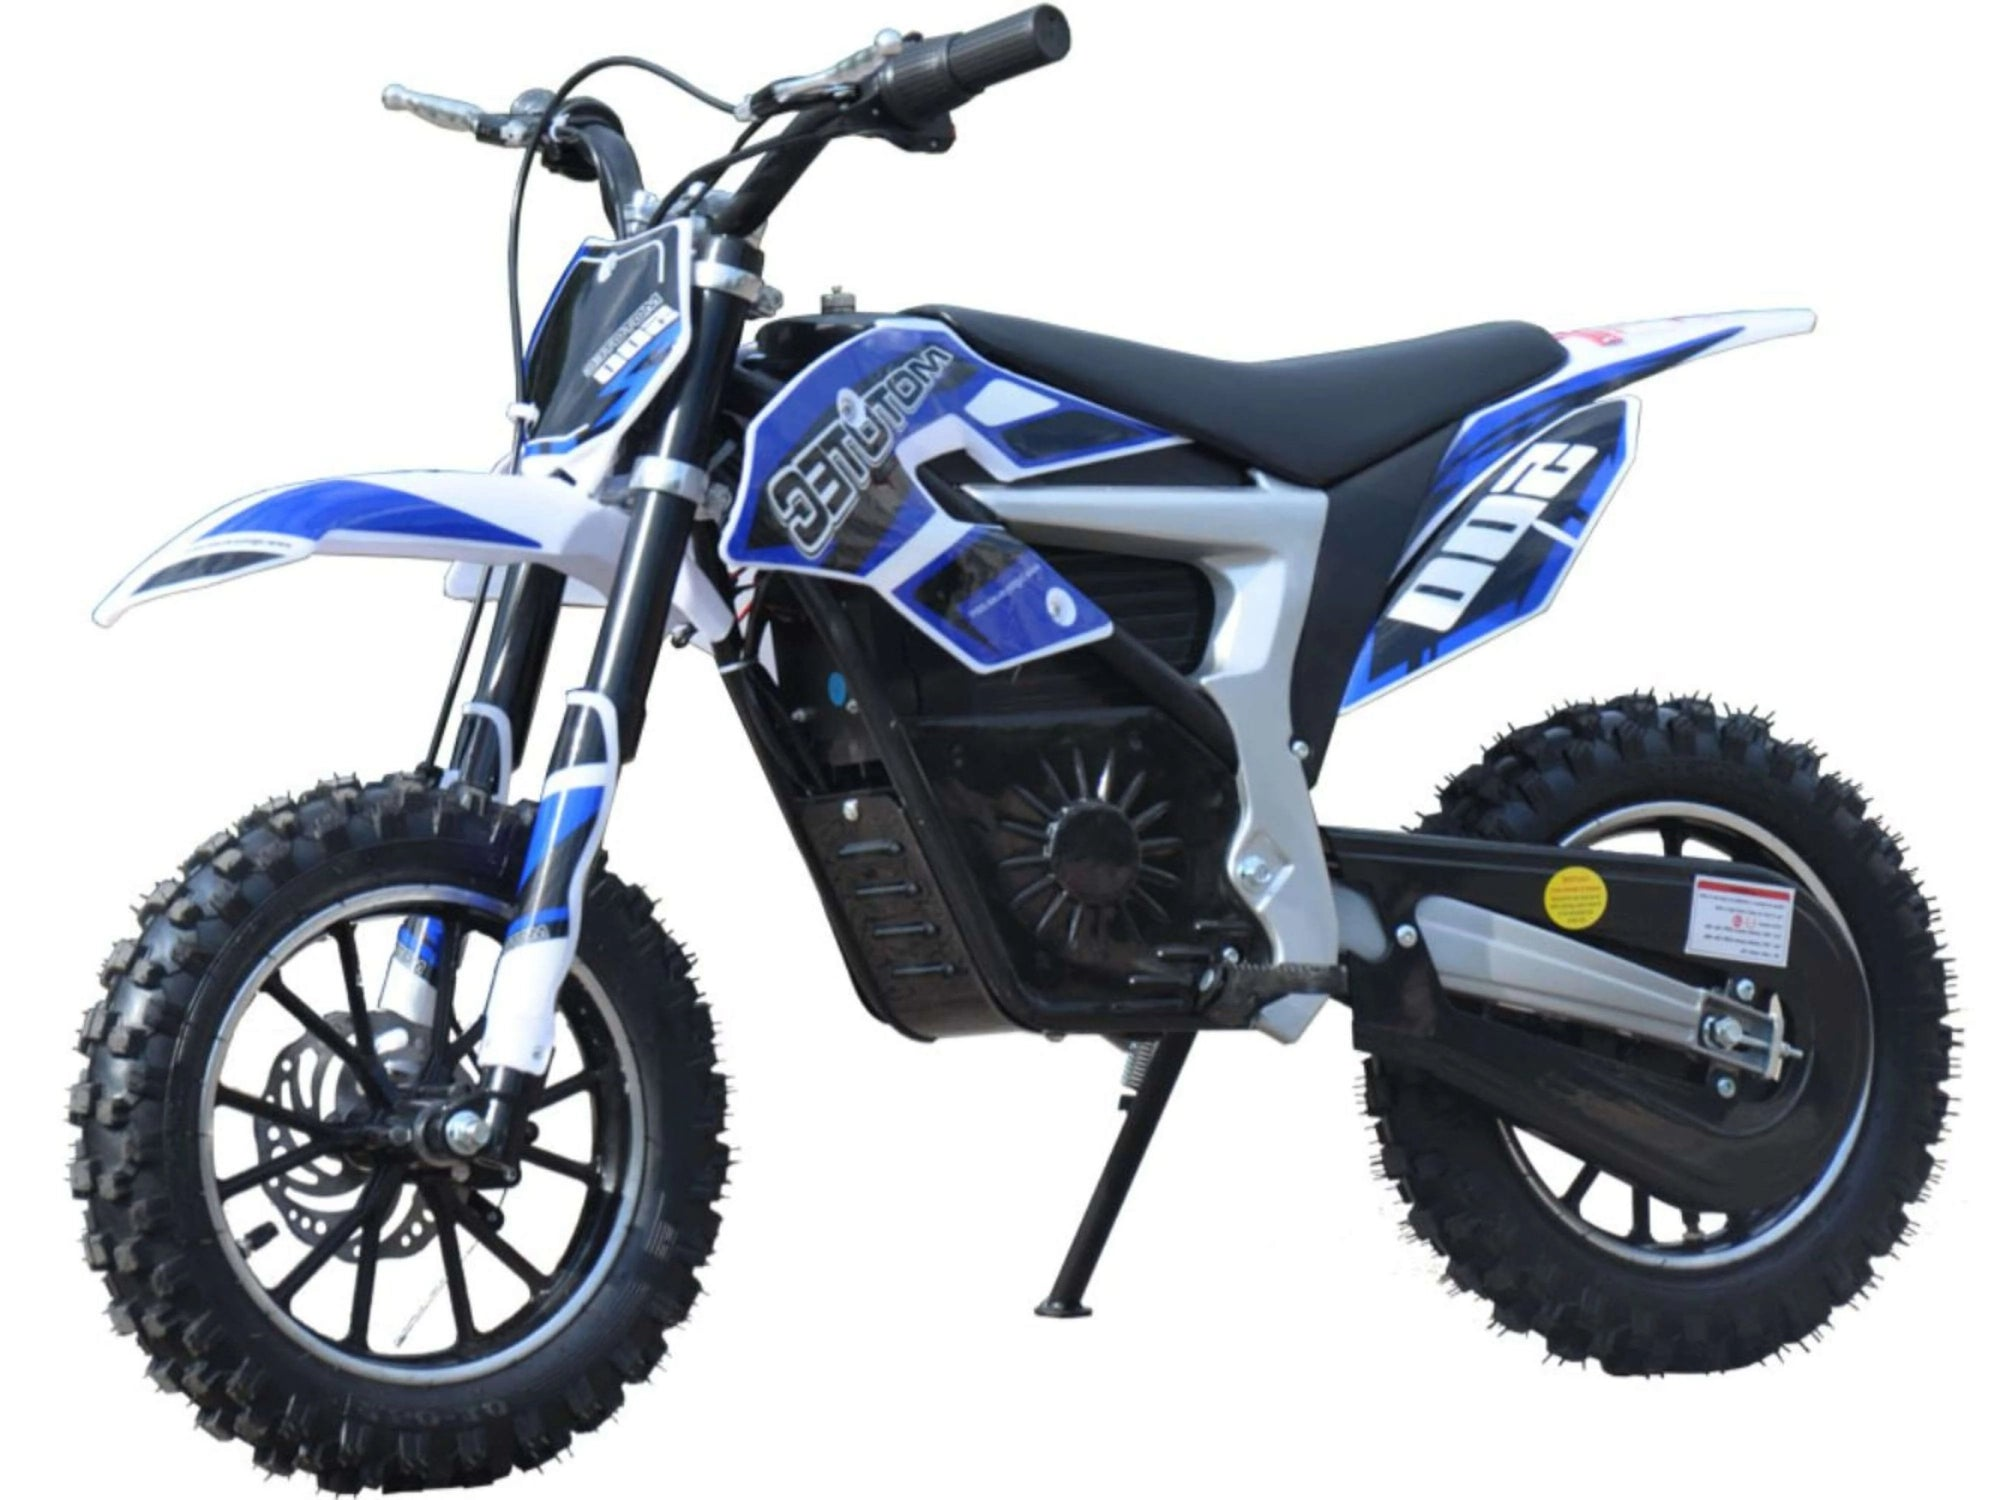 MotoTec 36v Pro 500w Lithium Powered Electric Dirt Bike in Blue